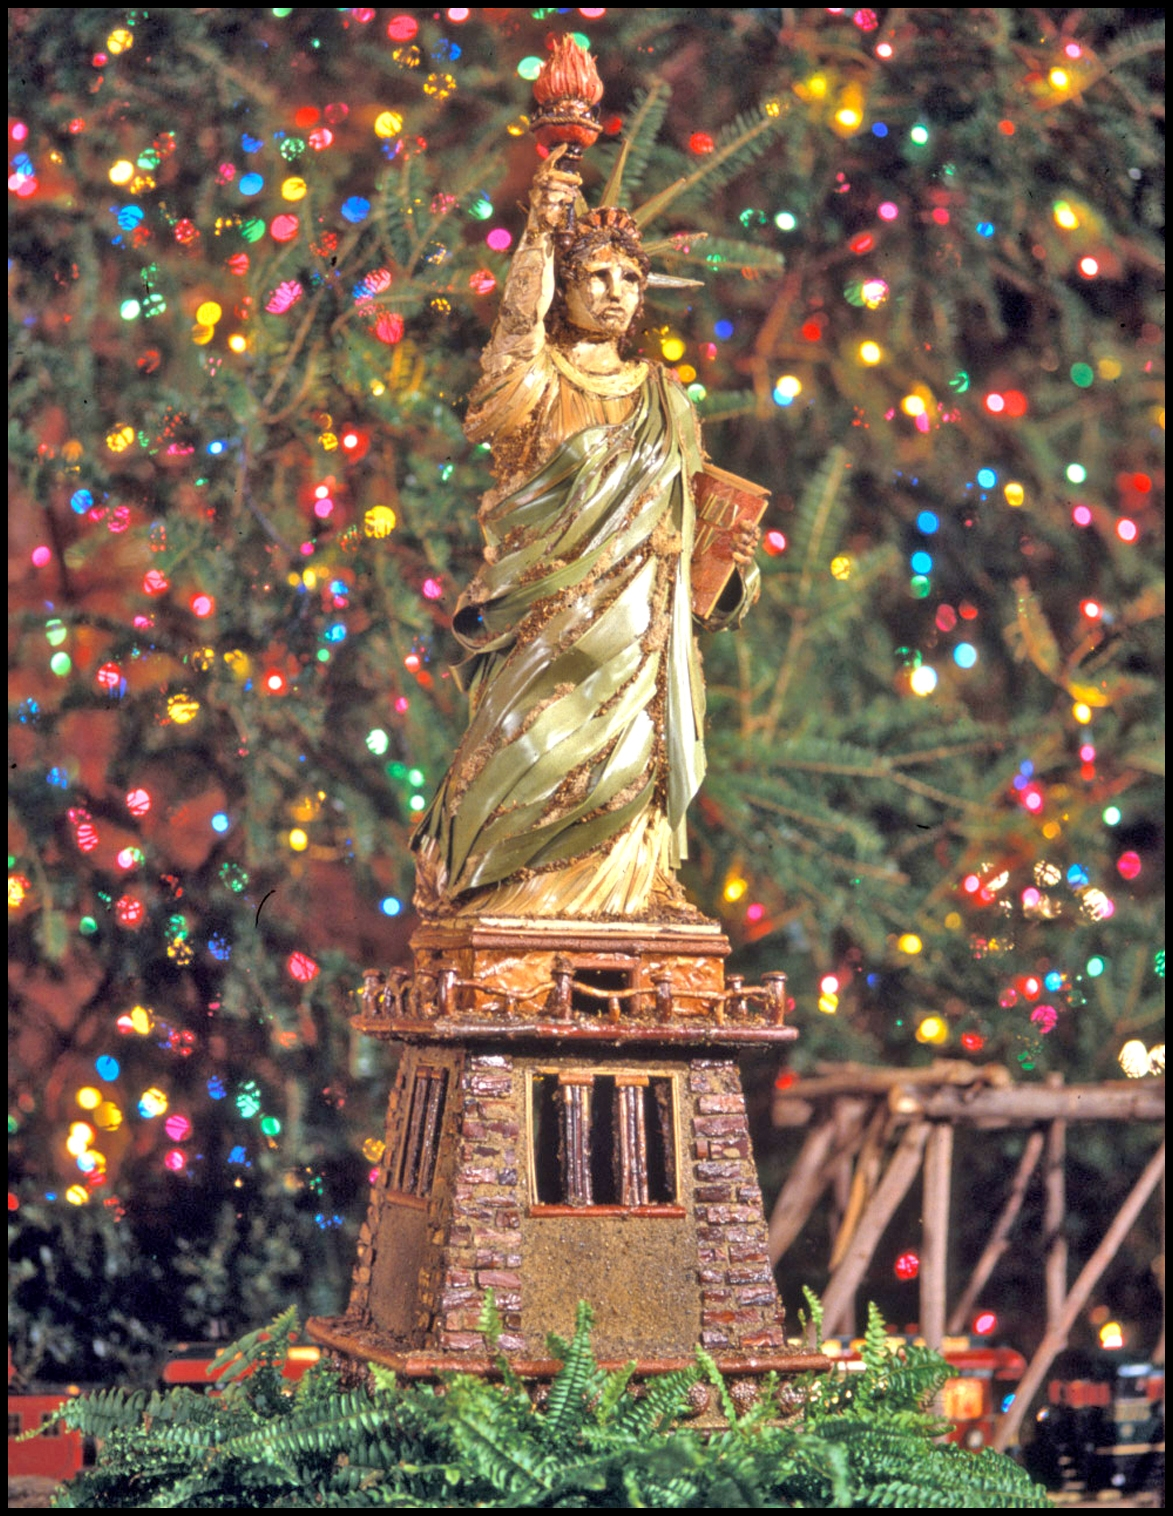 new-york-botanical-gardens-holiday-train-show004